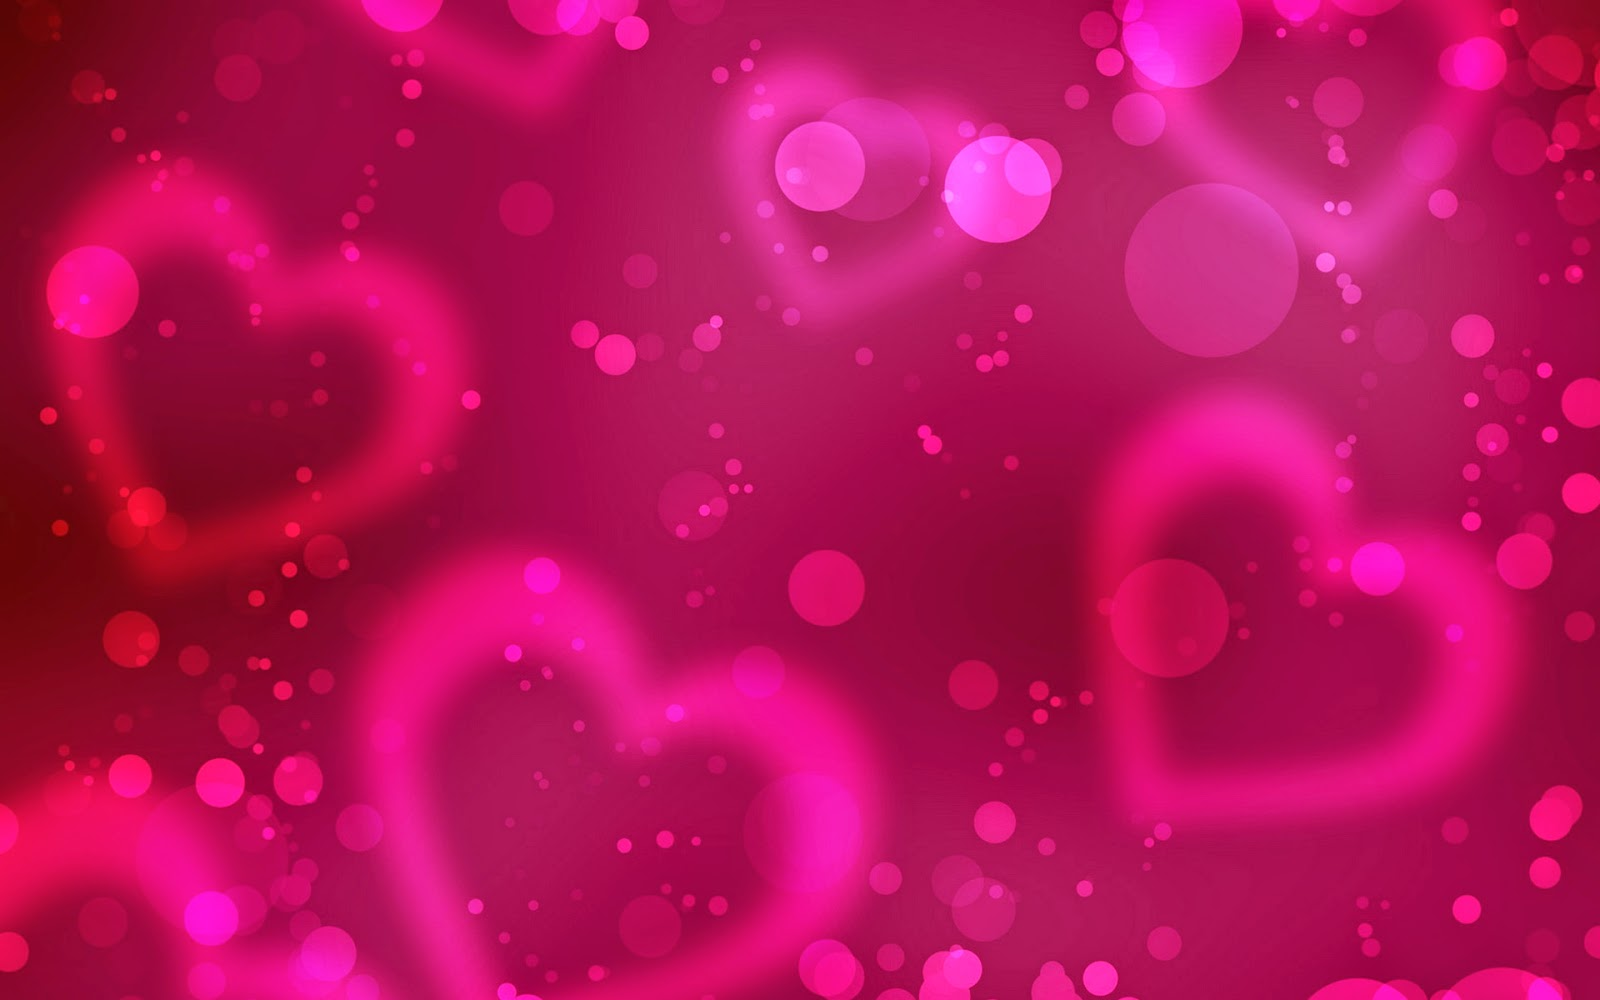 Love Heart Wallpaper Designs : Romantic Love Heart Designs HD cover Wallpaper